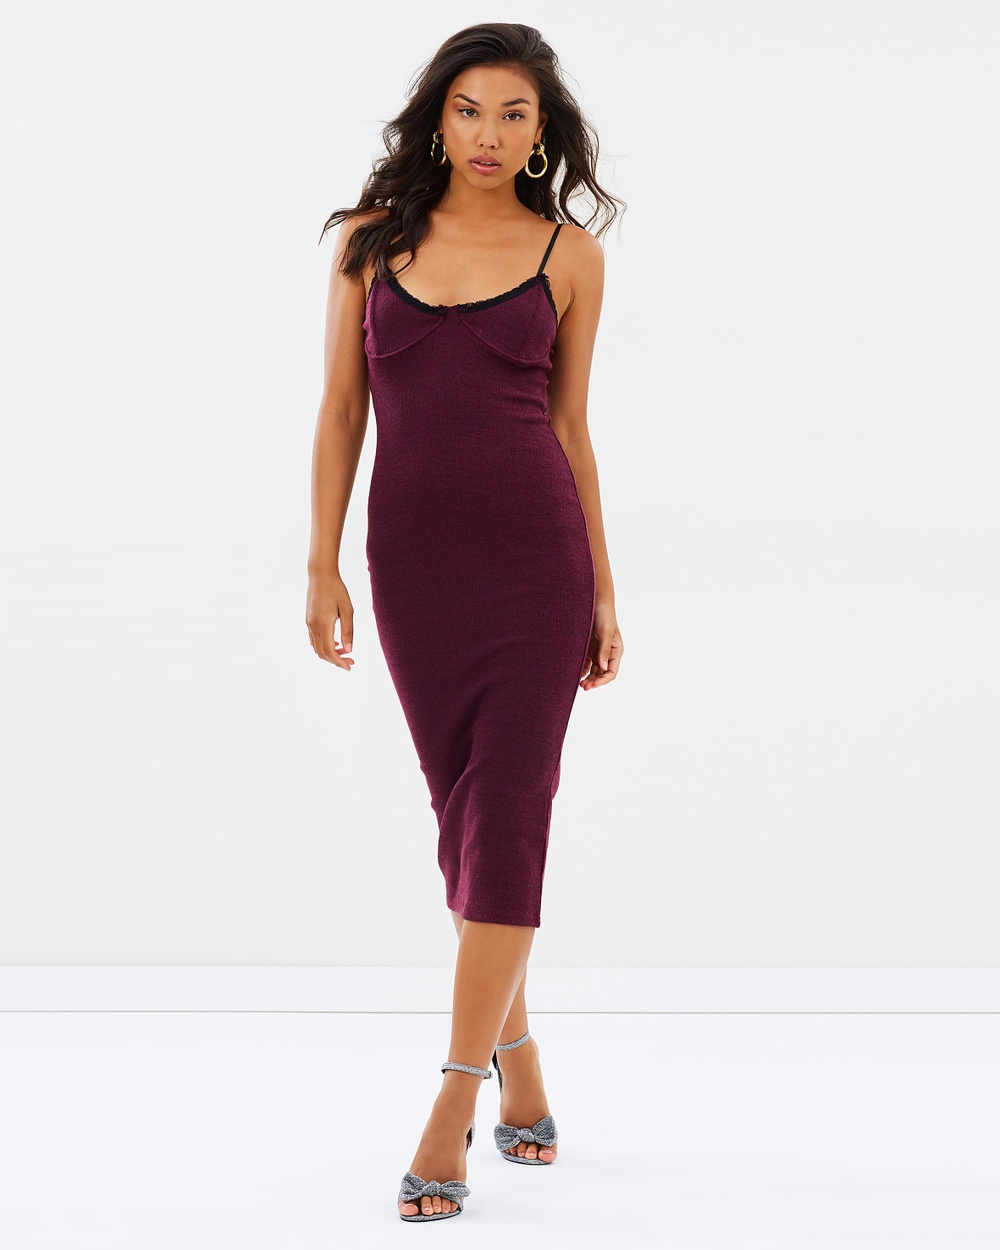 Missguided Strappy Ribbed Bust Cup Lace Trim Midi Dress Bodycon Dresses Purple Strappy Ribbed Bust Cup Lace Trim Midi Dress